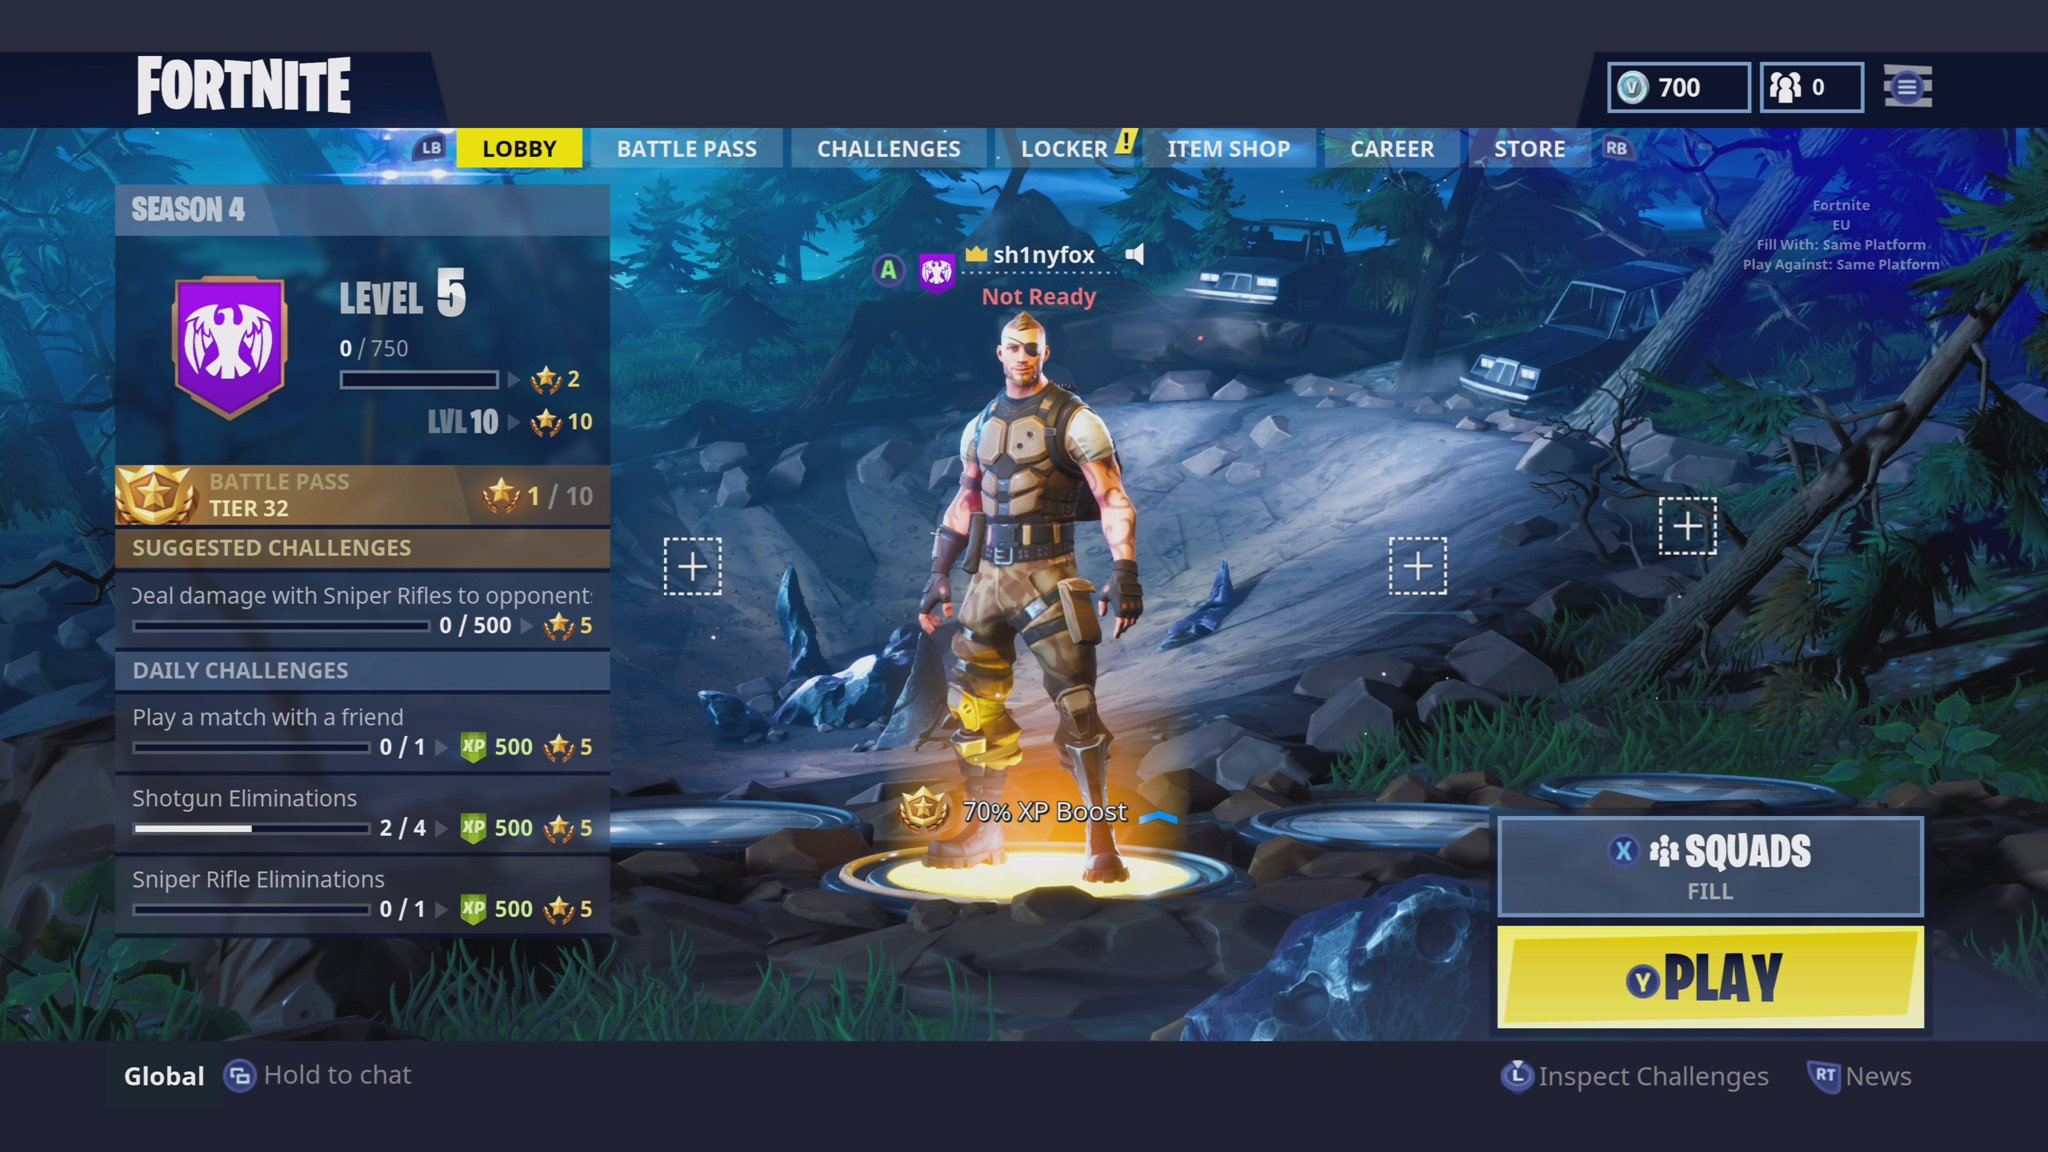 Fortnite Season 5 begins on July 12   Windows Central It s nearly time for a new Fortnite Battle Pass  Well  it s nearly time in  about two weeks  anyway  The current Season 4 is coming to an end and Epic  Games